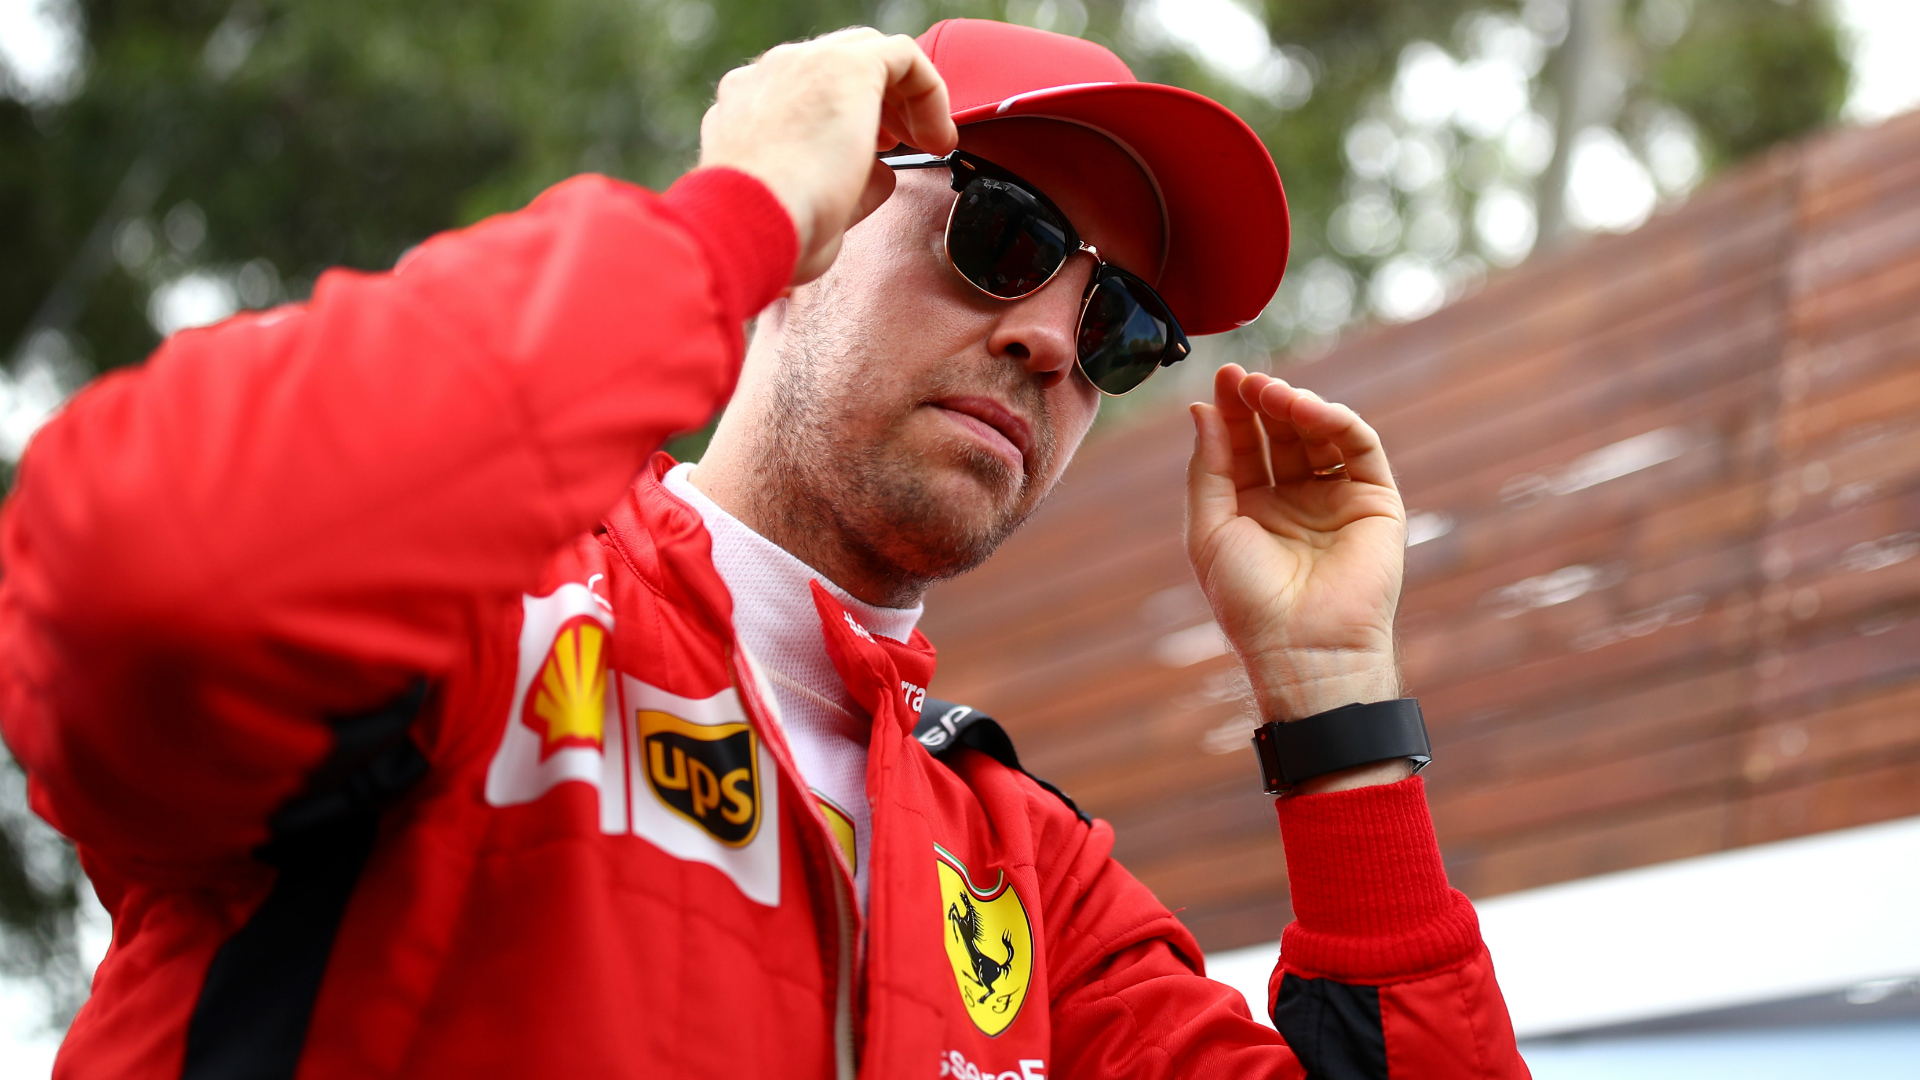 Vettel hungry to continue in F1 despite Ferrari exit – Ricciardo